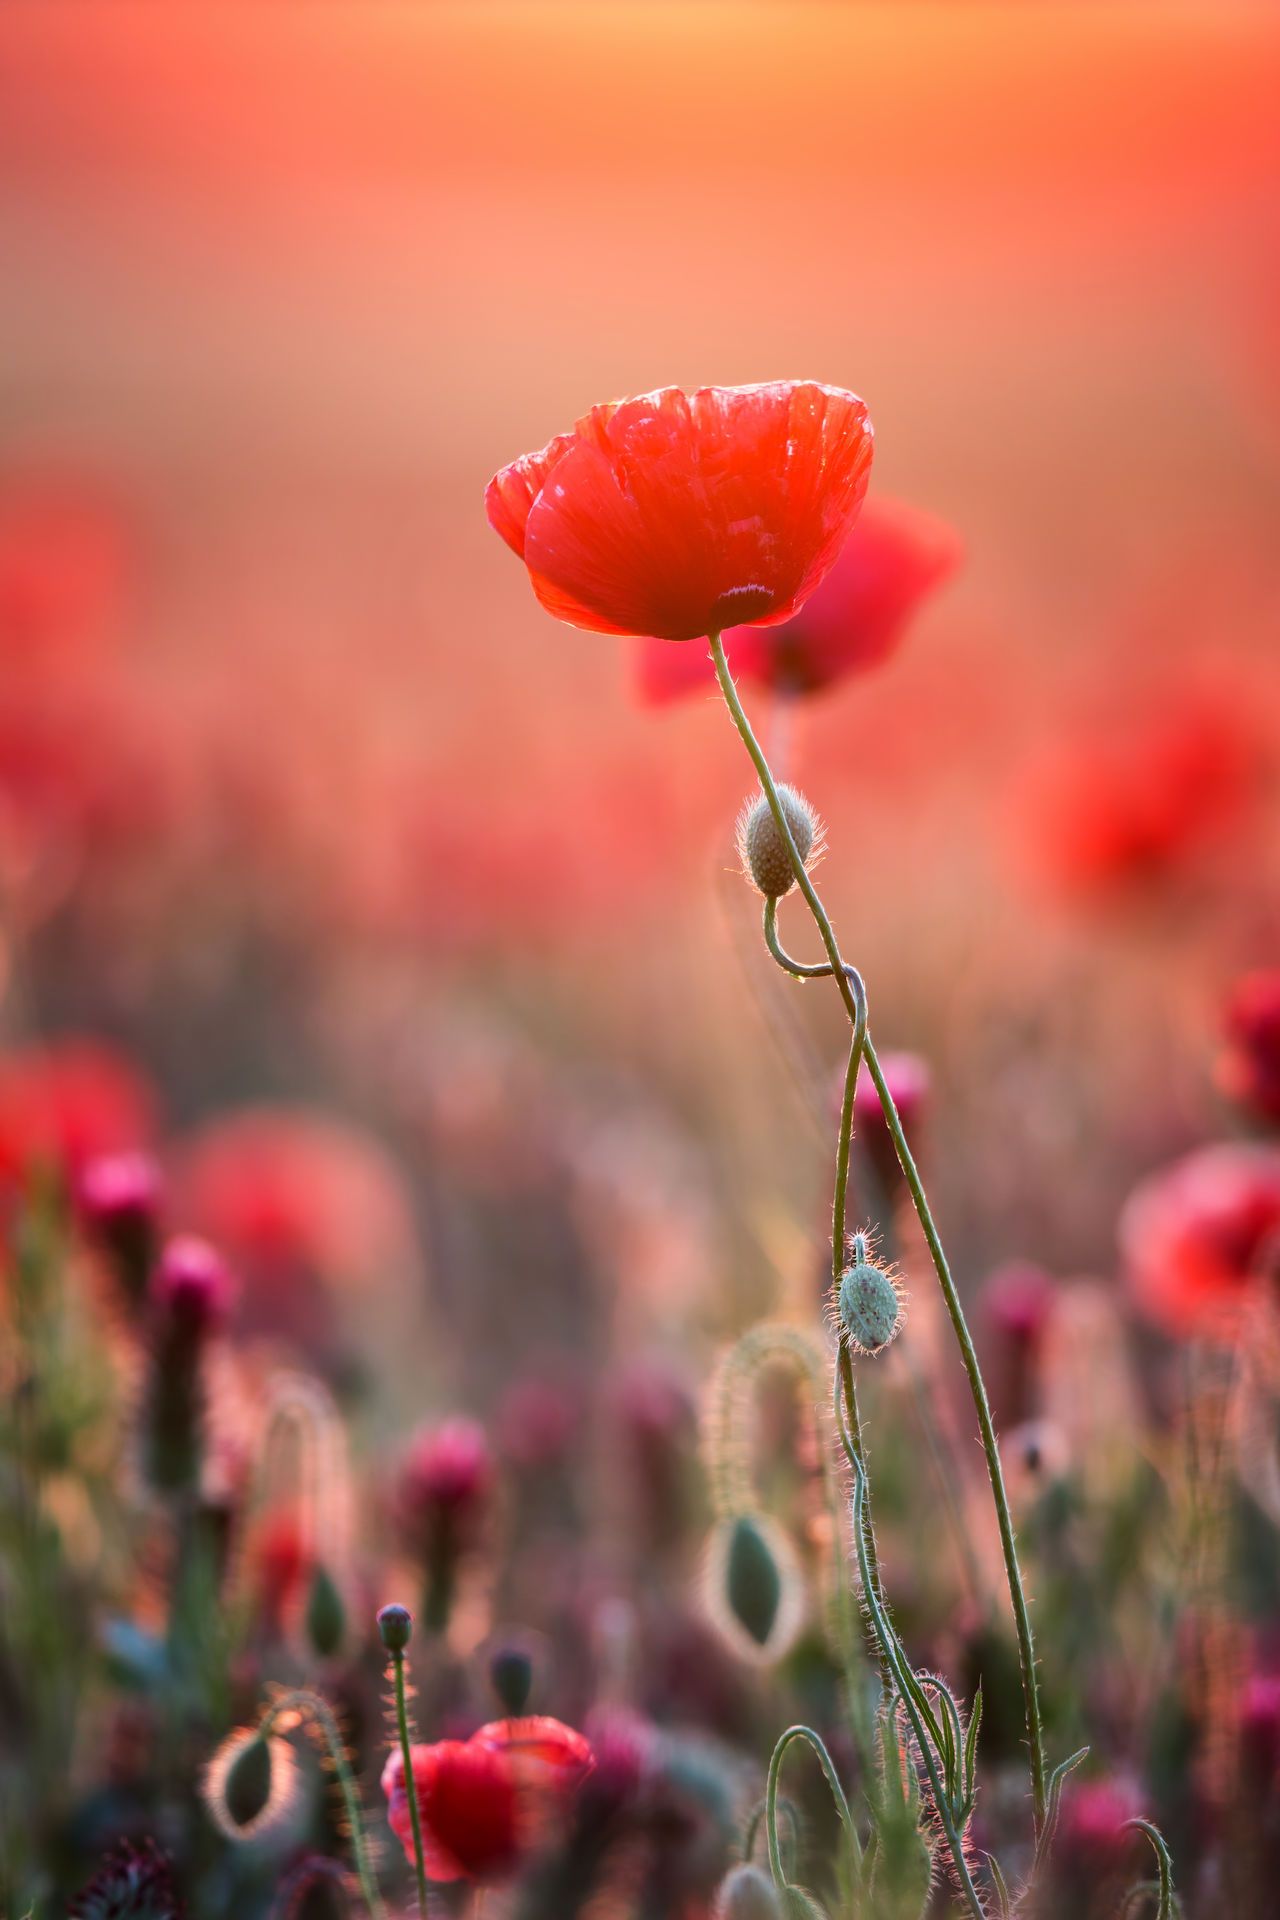 Beauty Beauty In Nature Blossom Close Up Close-up Day Flower Flower Collection Flower Head Flowers Fragility Freshness Growth Nature Nature Nature Photography Nature_collection No People Outdoors Petal Plant Poppy Red Red Rural Scene